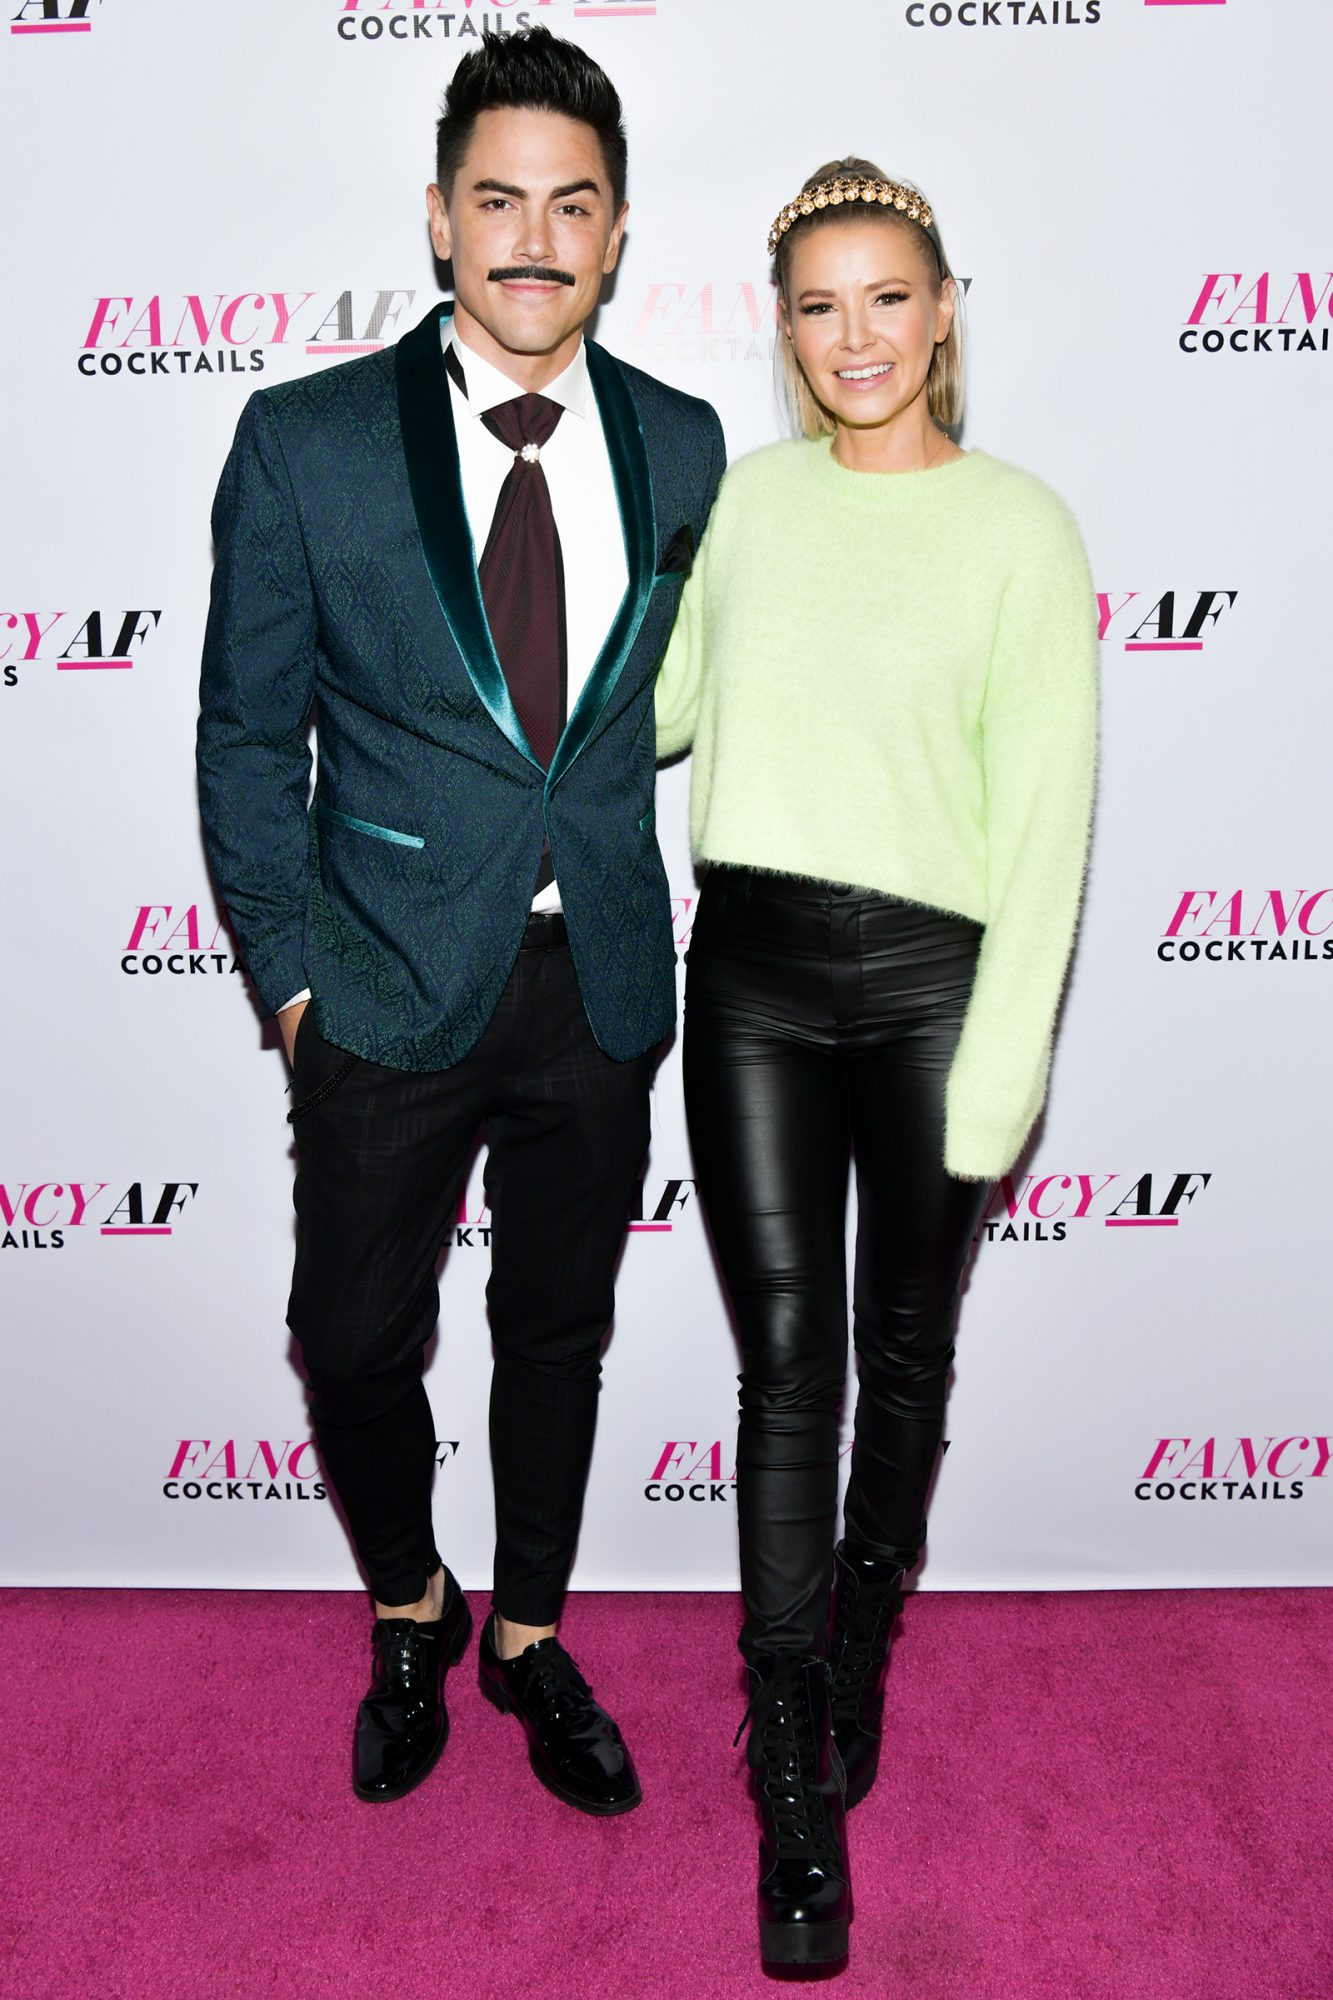 """Tom Sandoval (L) and Ariana Madix attend the Official Launch Event for """"Fancy AF Cocktails"""" by Ariana Madix, Tom Sandoval and Danny Pellegrino at SkyBar at the Mondrian Los Angeles on December 10, 2019 in West Hollywood, California"""